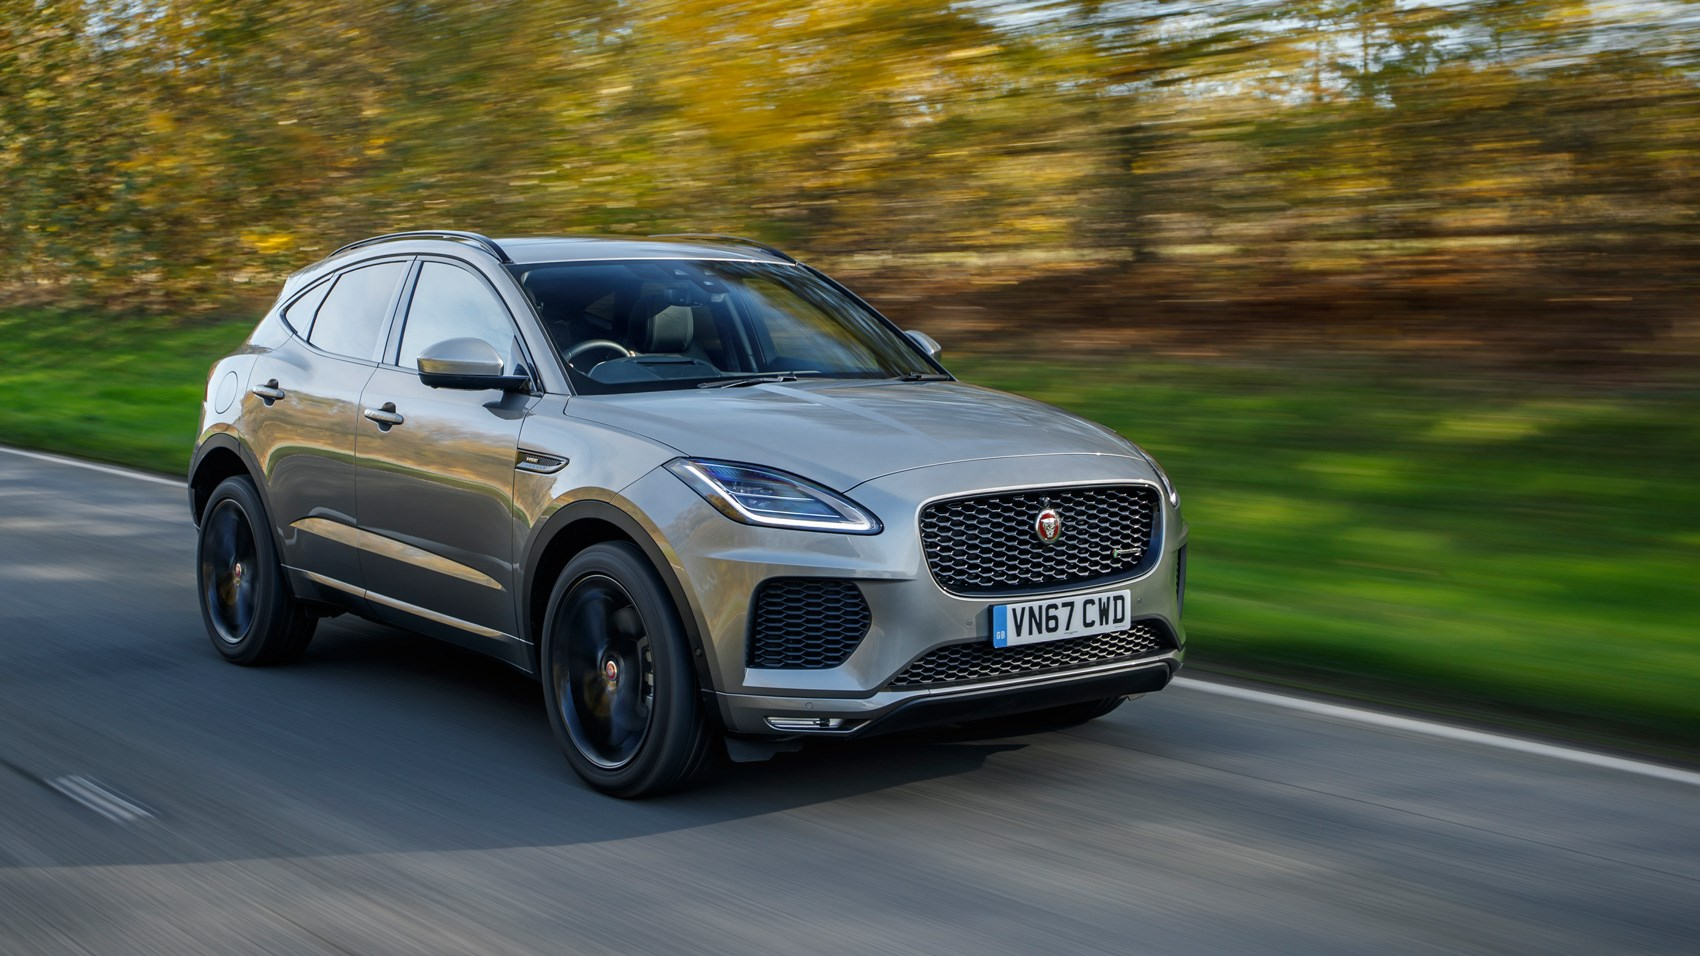 Jaguar E-Pace: prices, specs and a verdict you can trust